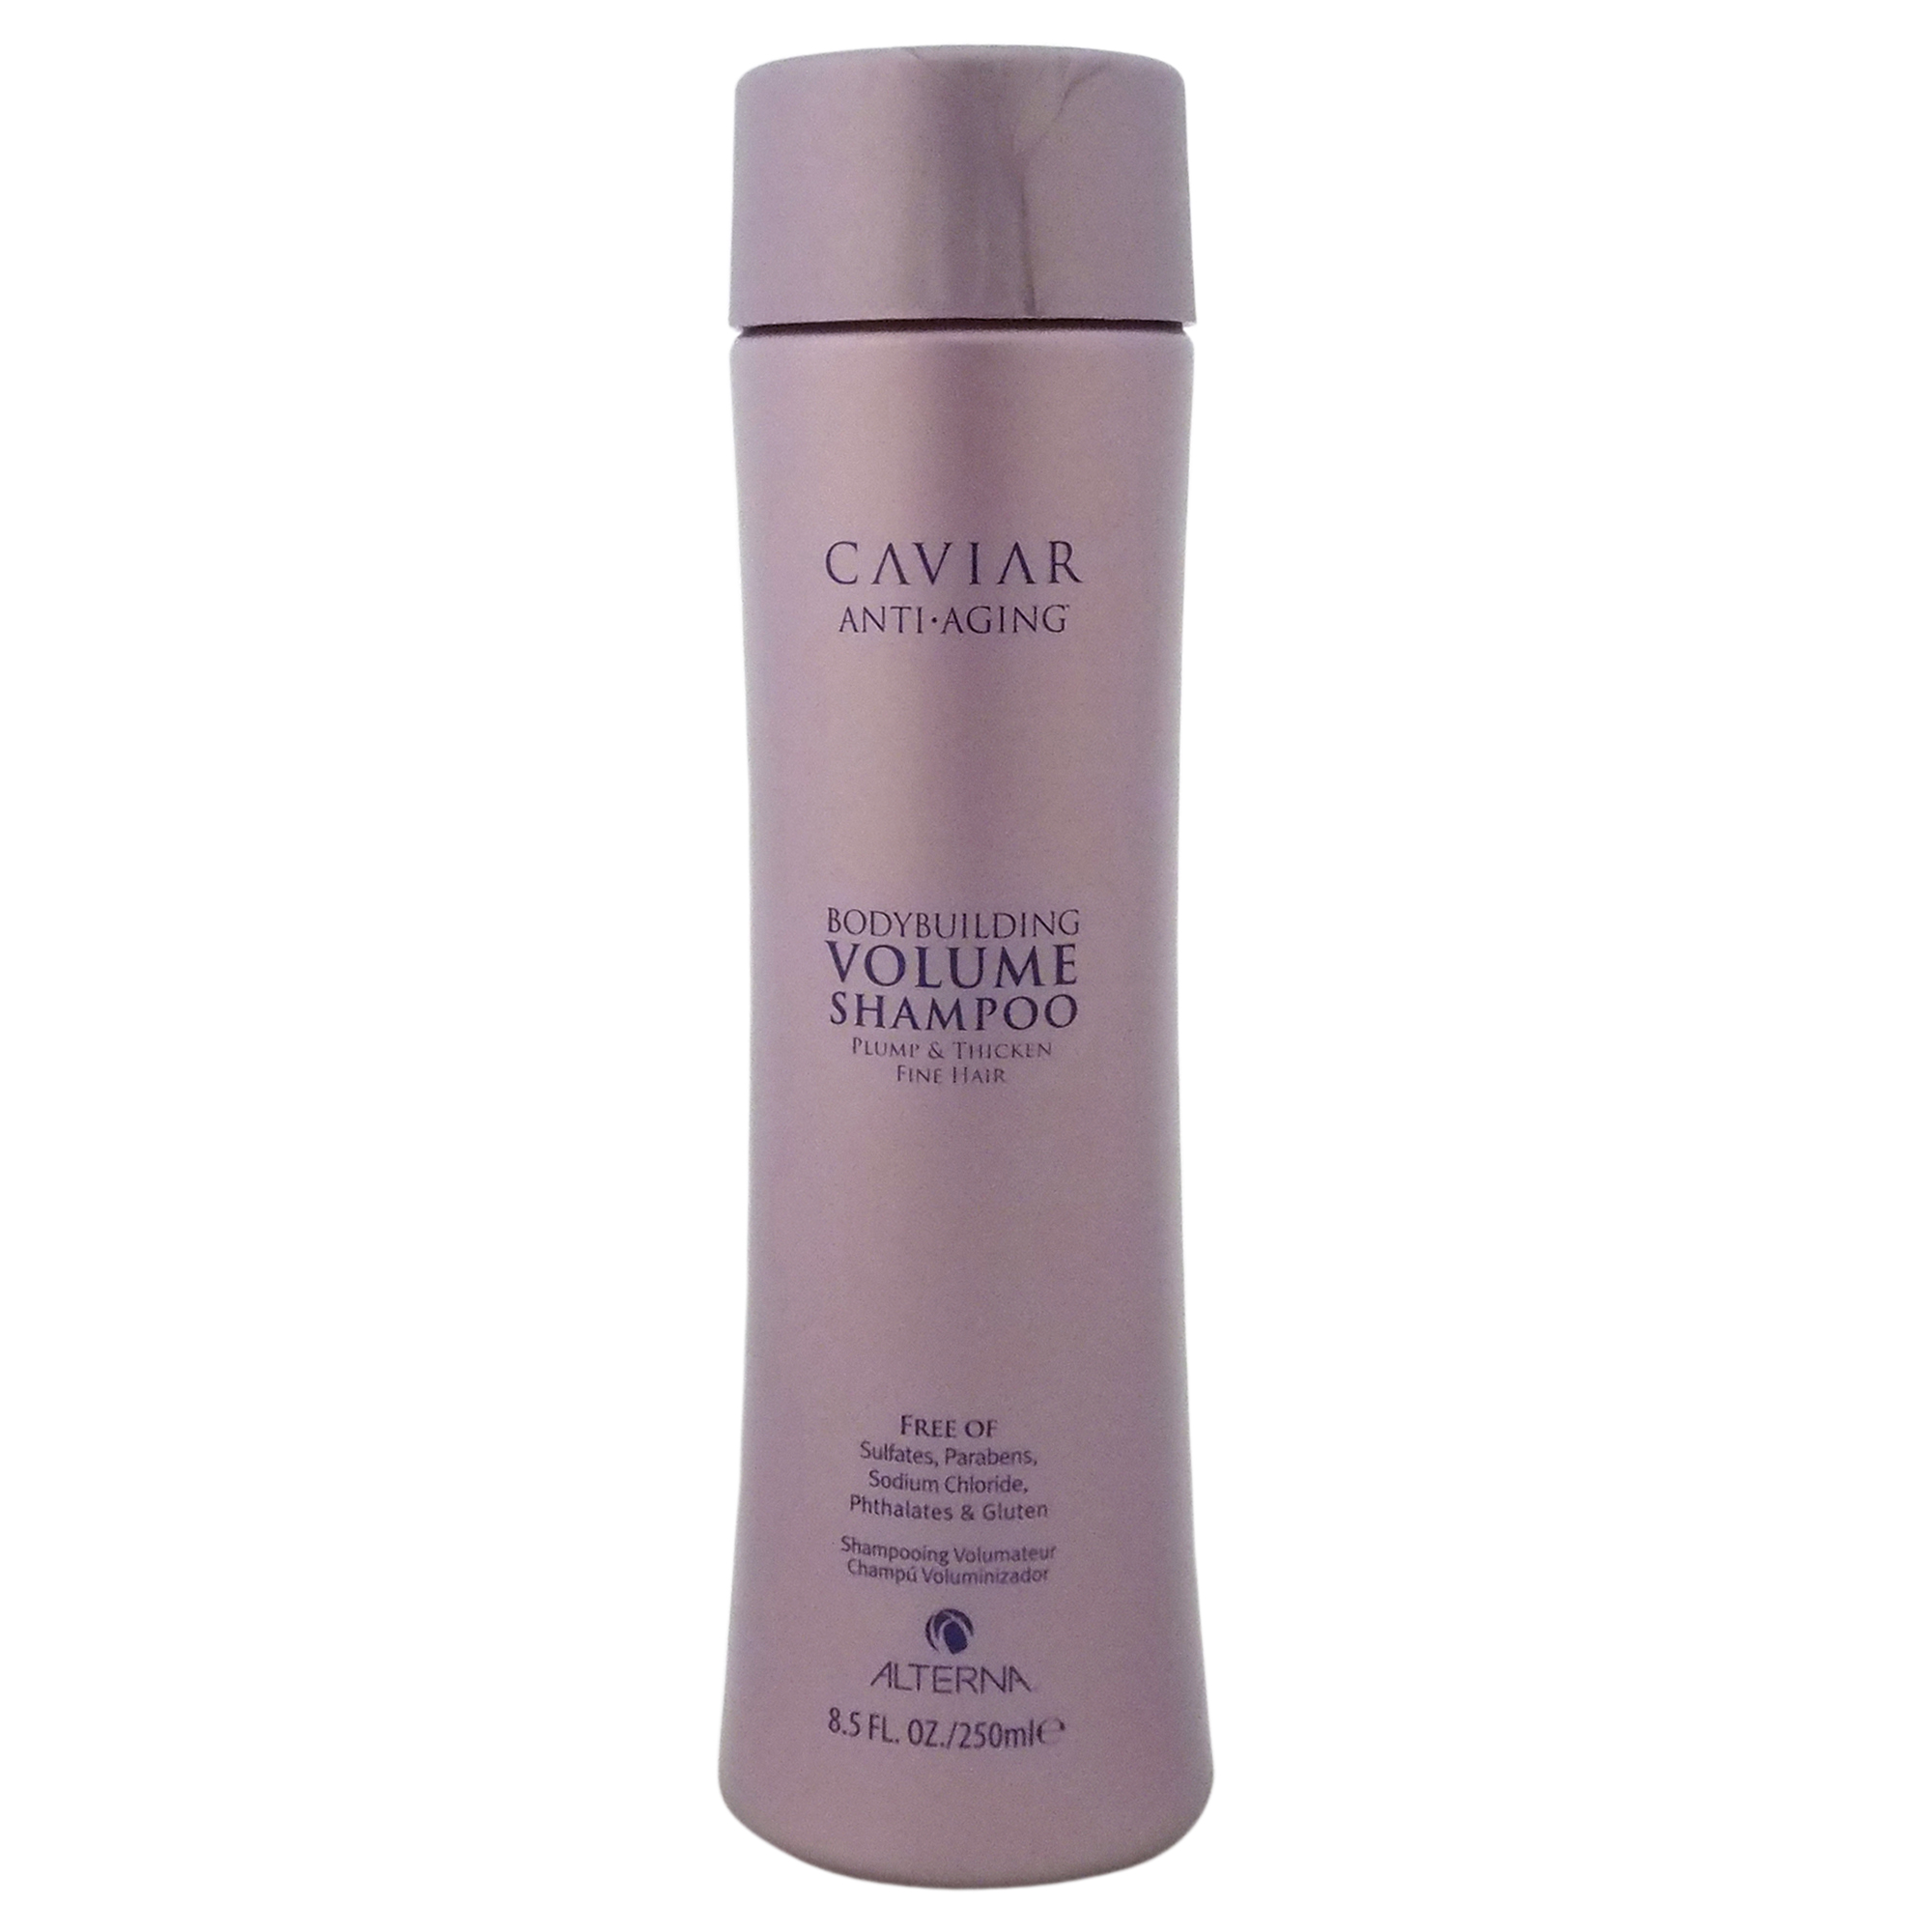 Alterna Caviar AntiAging Body Building Volume Shampoo